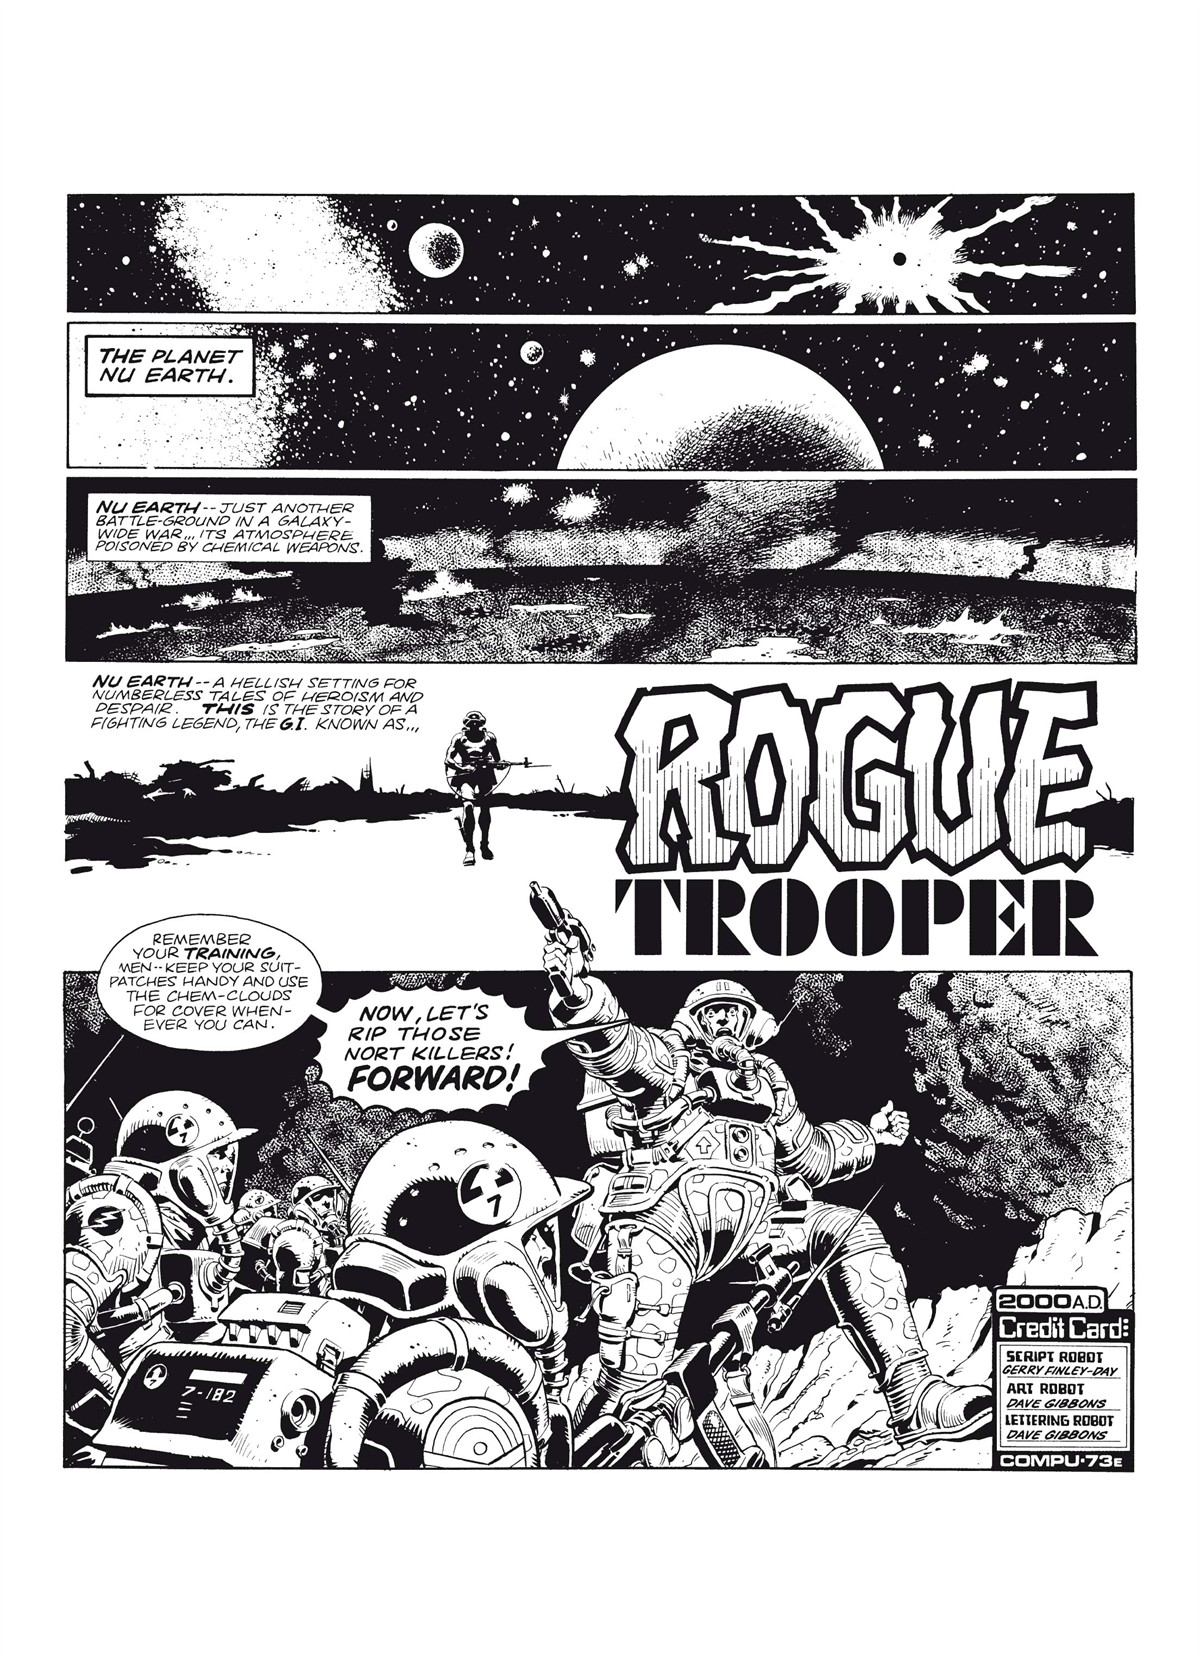 Rogue trooper tales of nu earth 1 9781907992704.in02